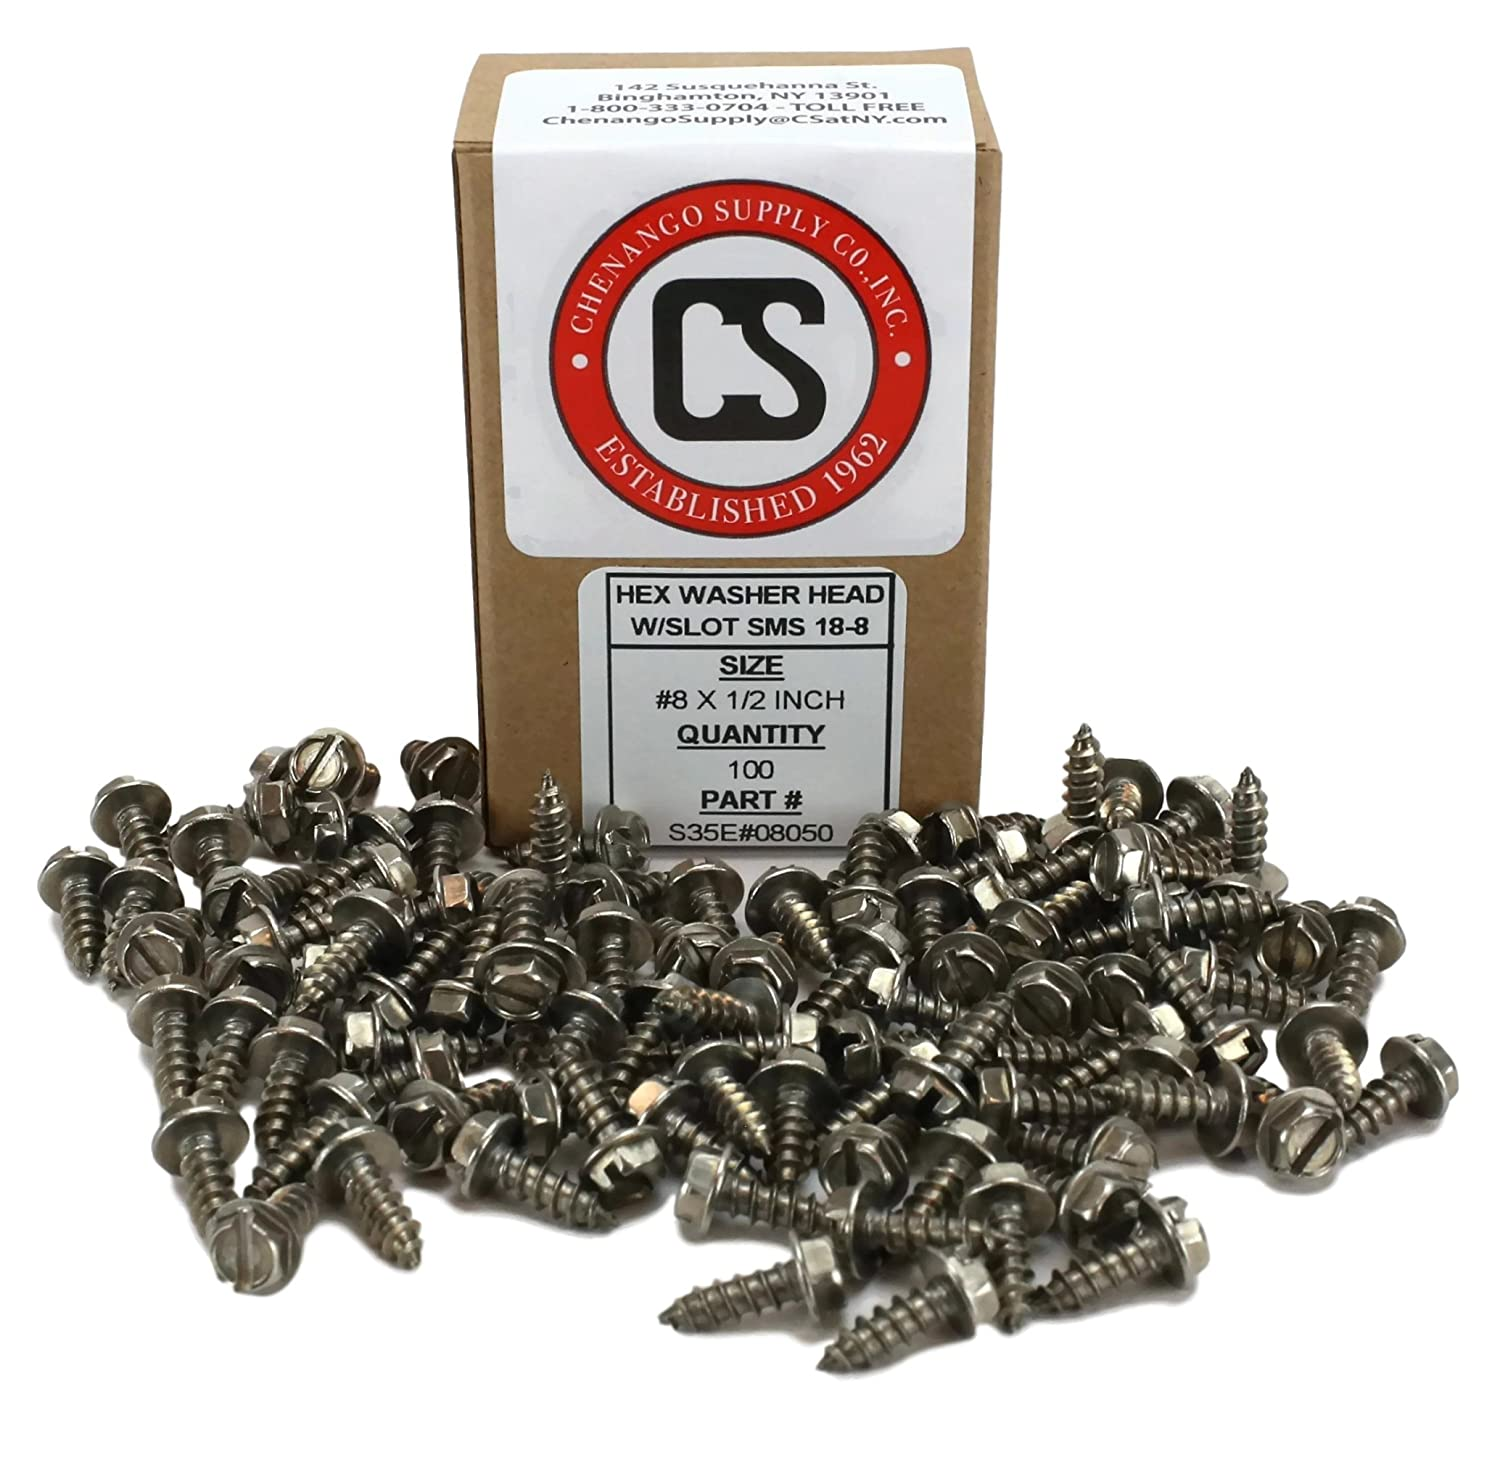 1//2 to 1-1//2 in Listing #8x1-1//2 100 pcs Sheet Metal Screws #8 X 1-1//2 Stainless Steel Hex Washer Head w//Slot Sheetmetal Screw